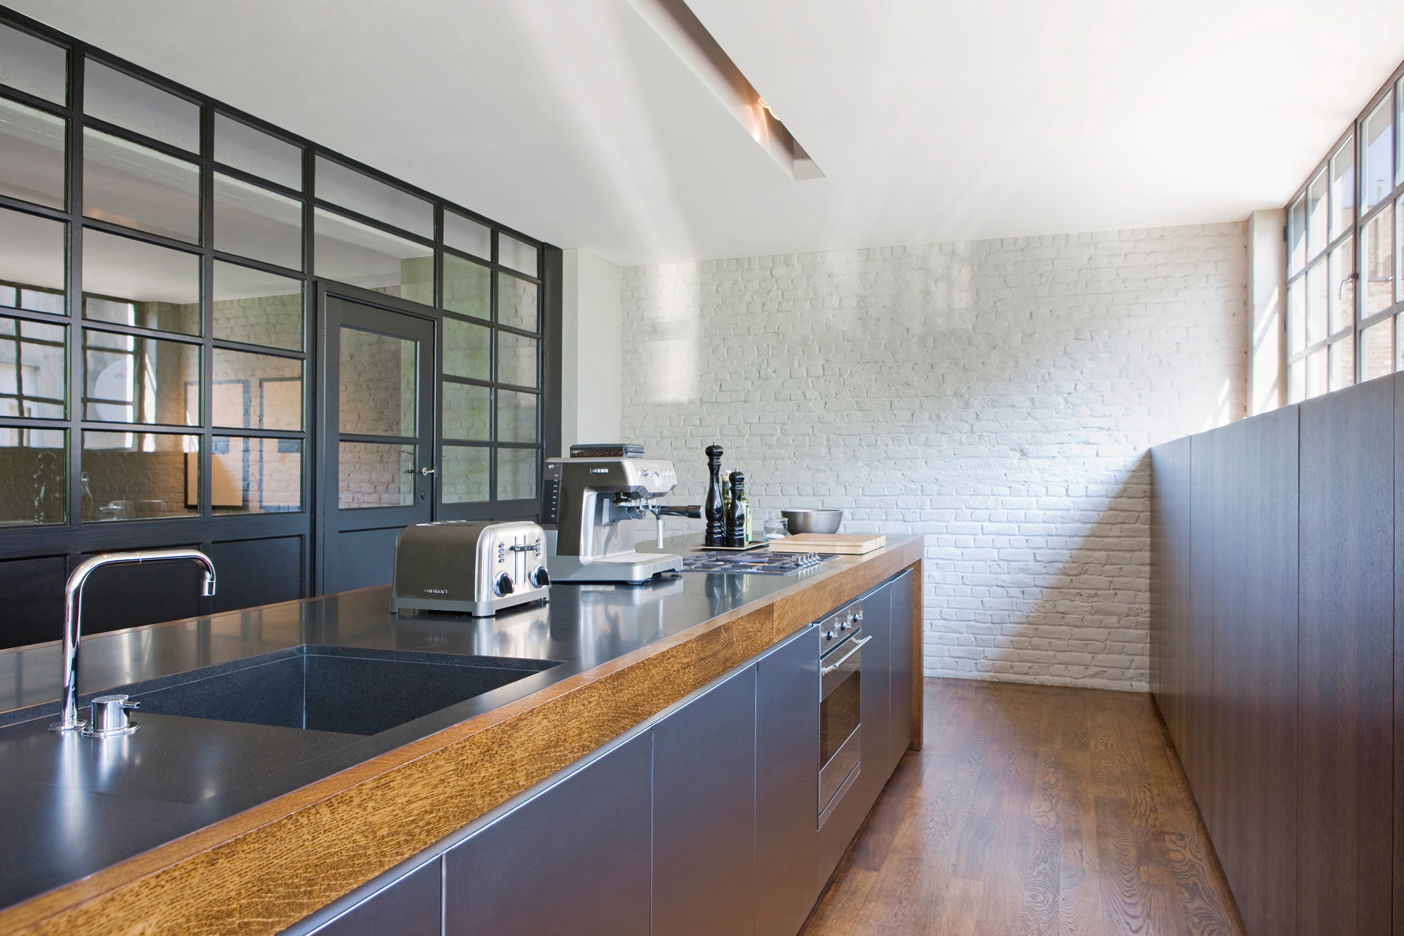 Loft Bart - Architectslab - Molenbeek - HR